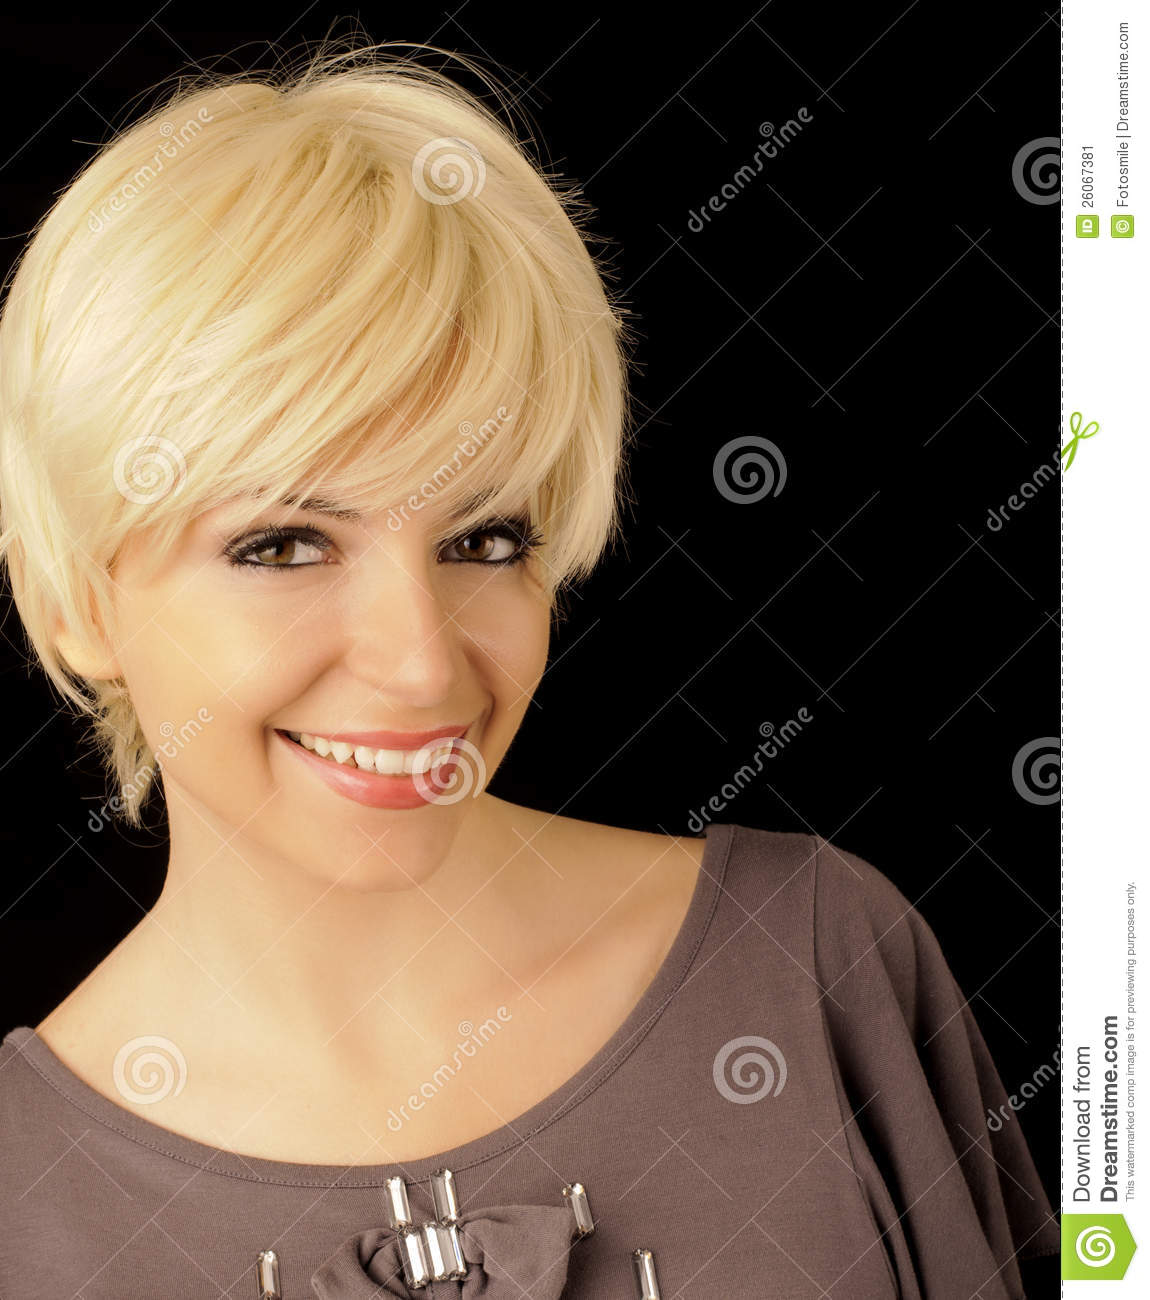 Beautiful Girl With Short Hair Stock Image - Image 26067381-8061